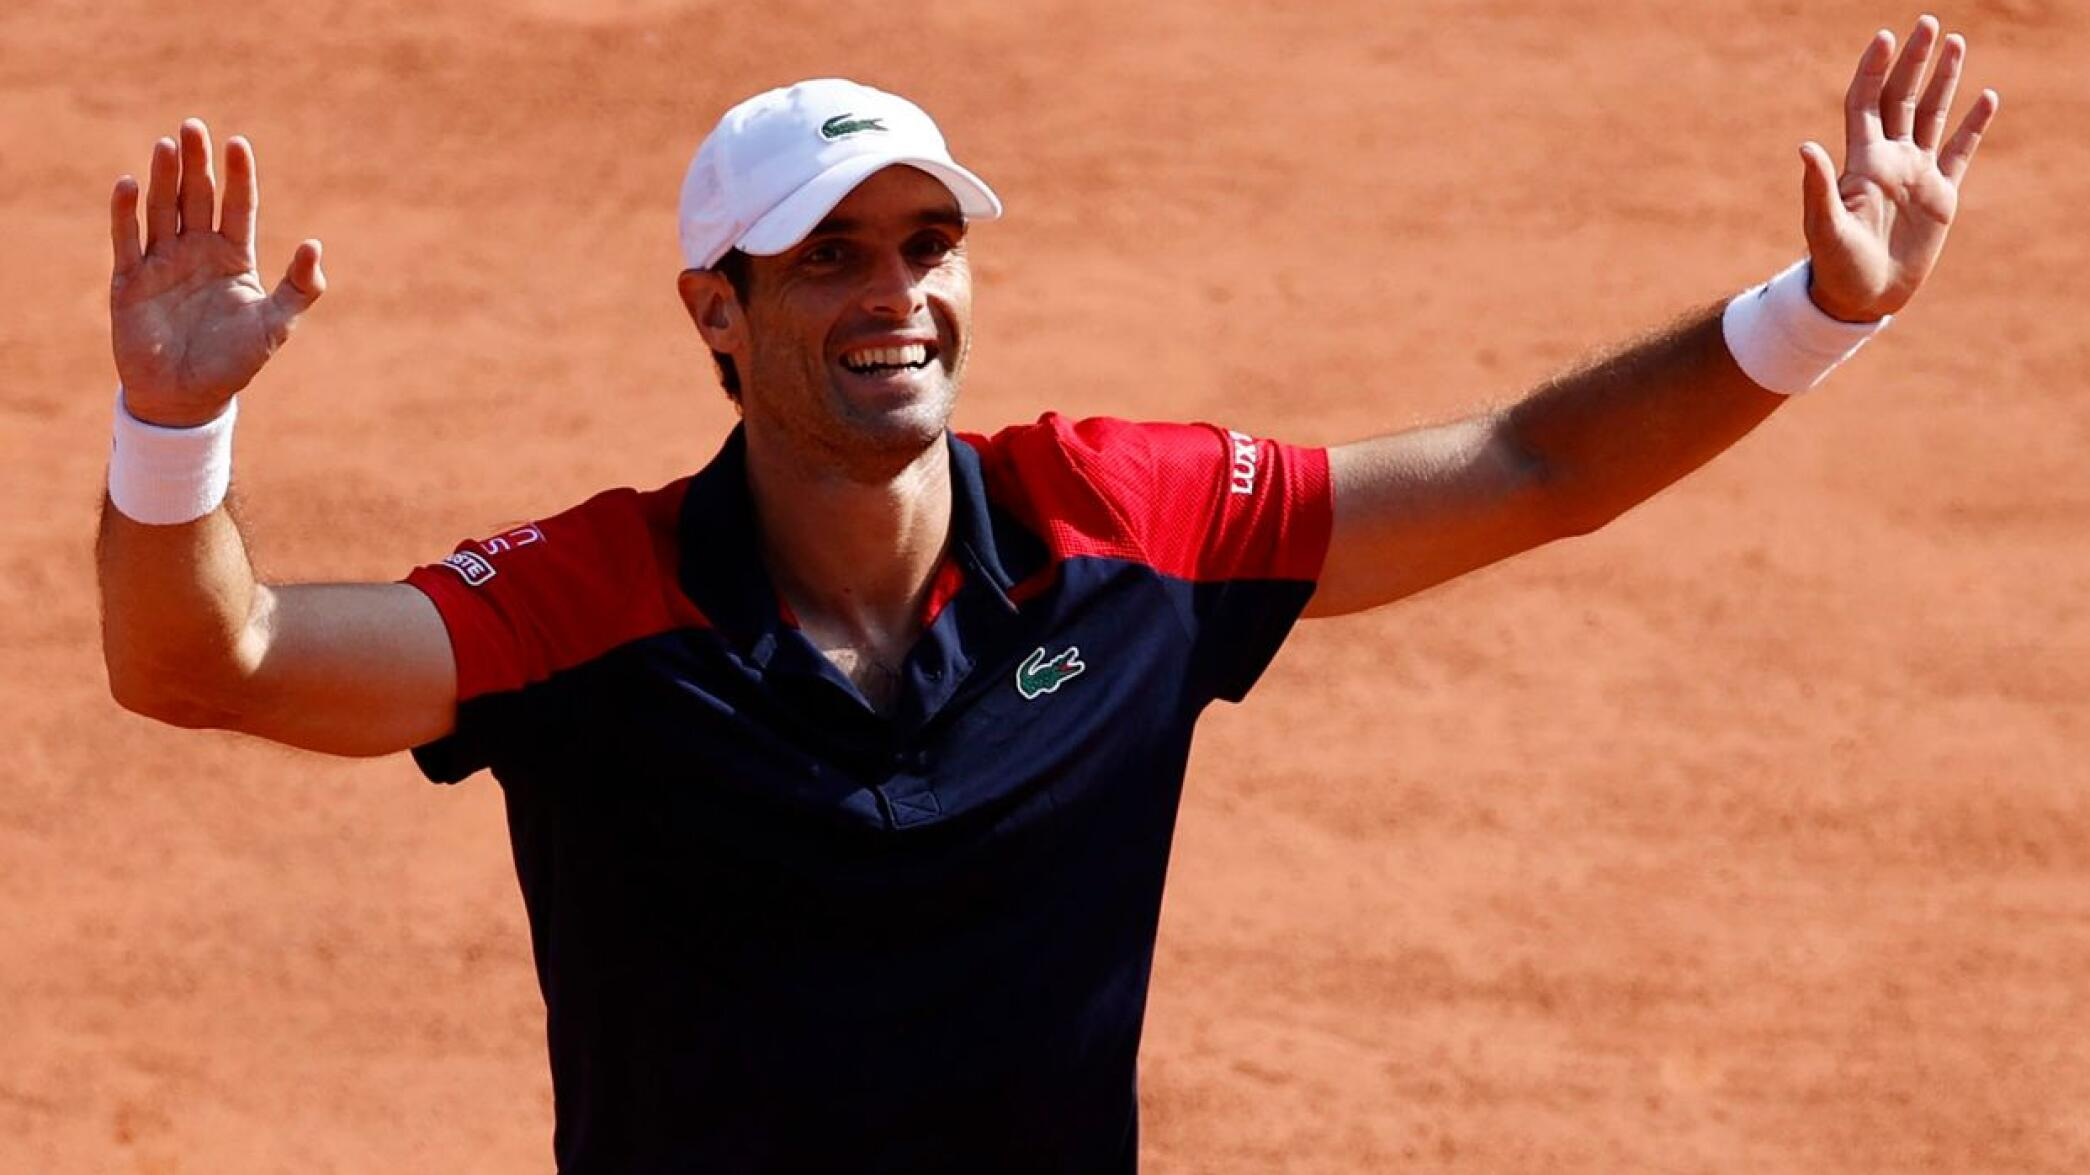 Spain's Pablo Andujar celebrates after winning his French Open first round match against Austria's Dominic Thiem